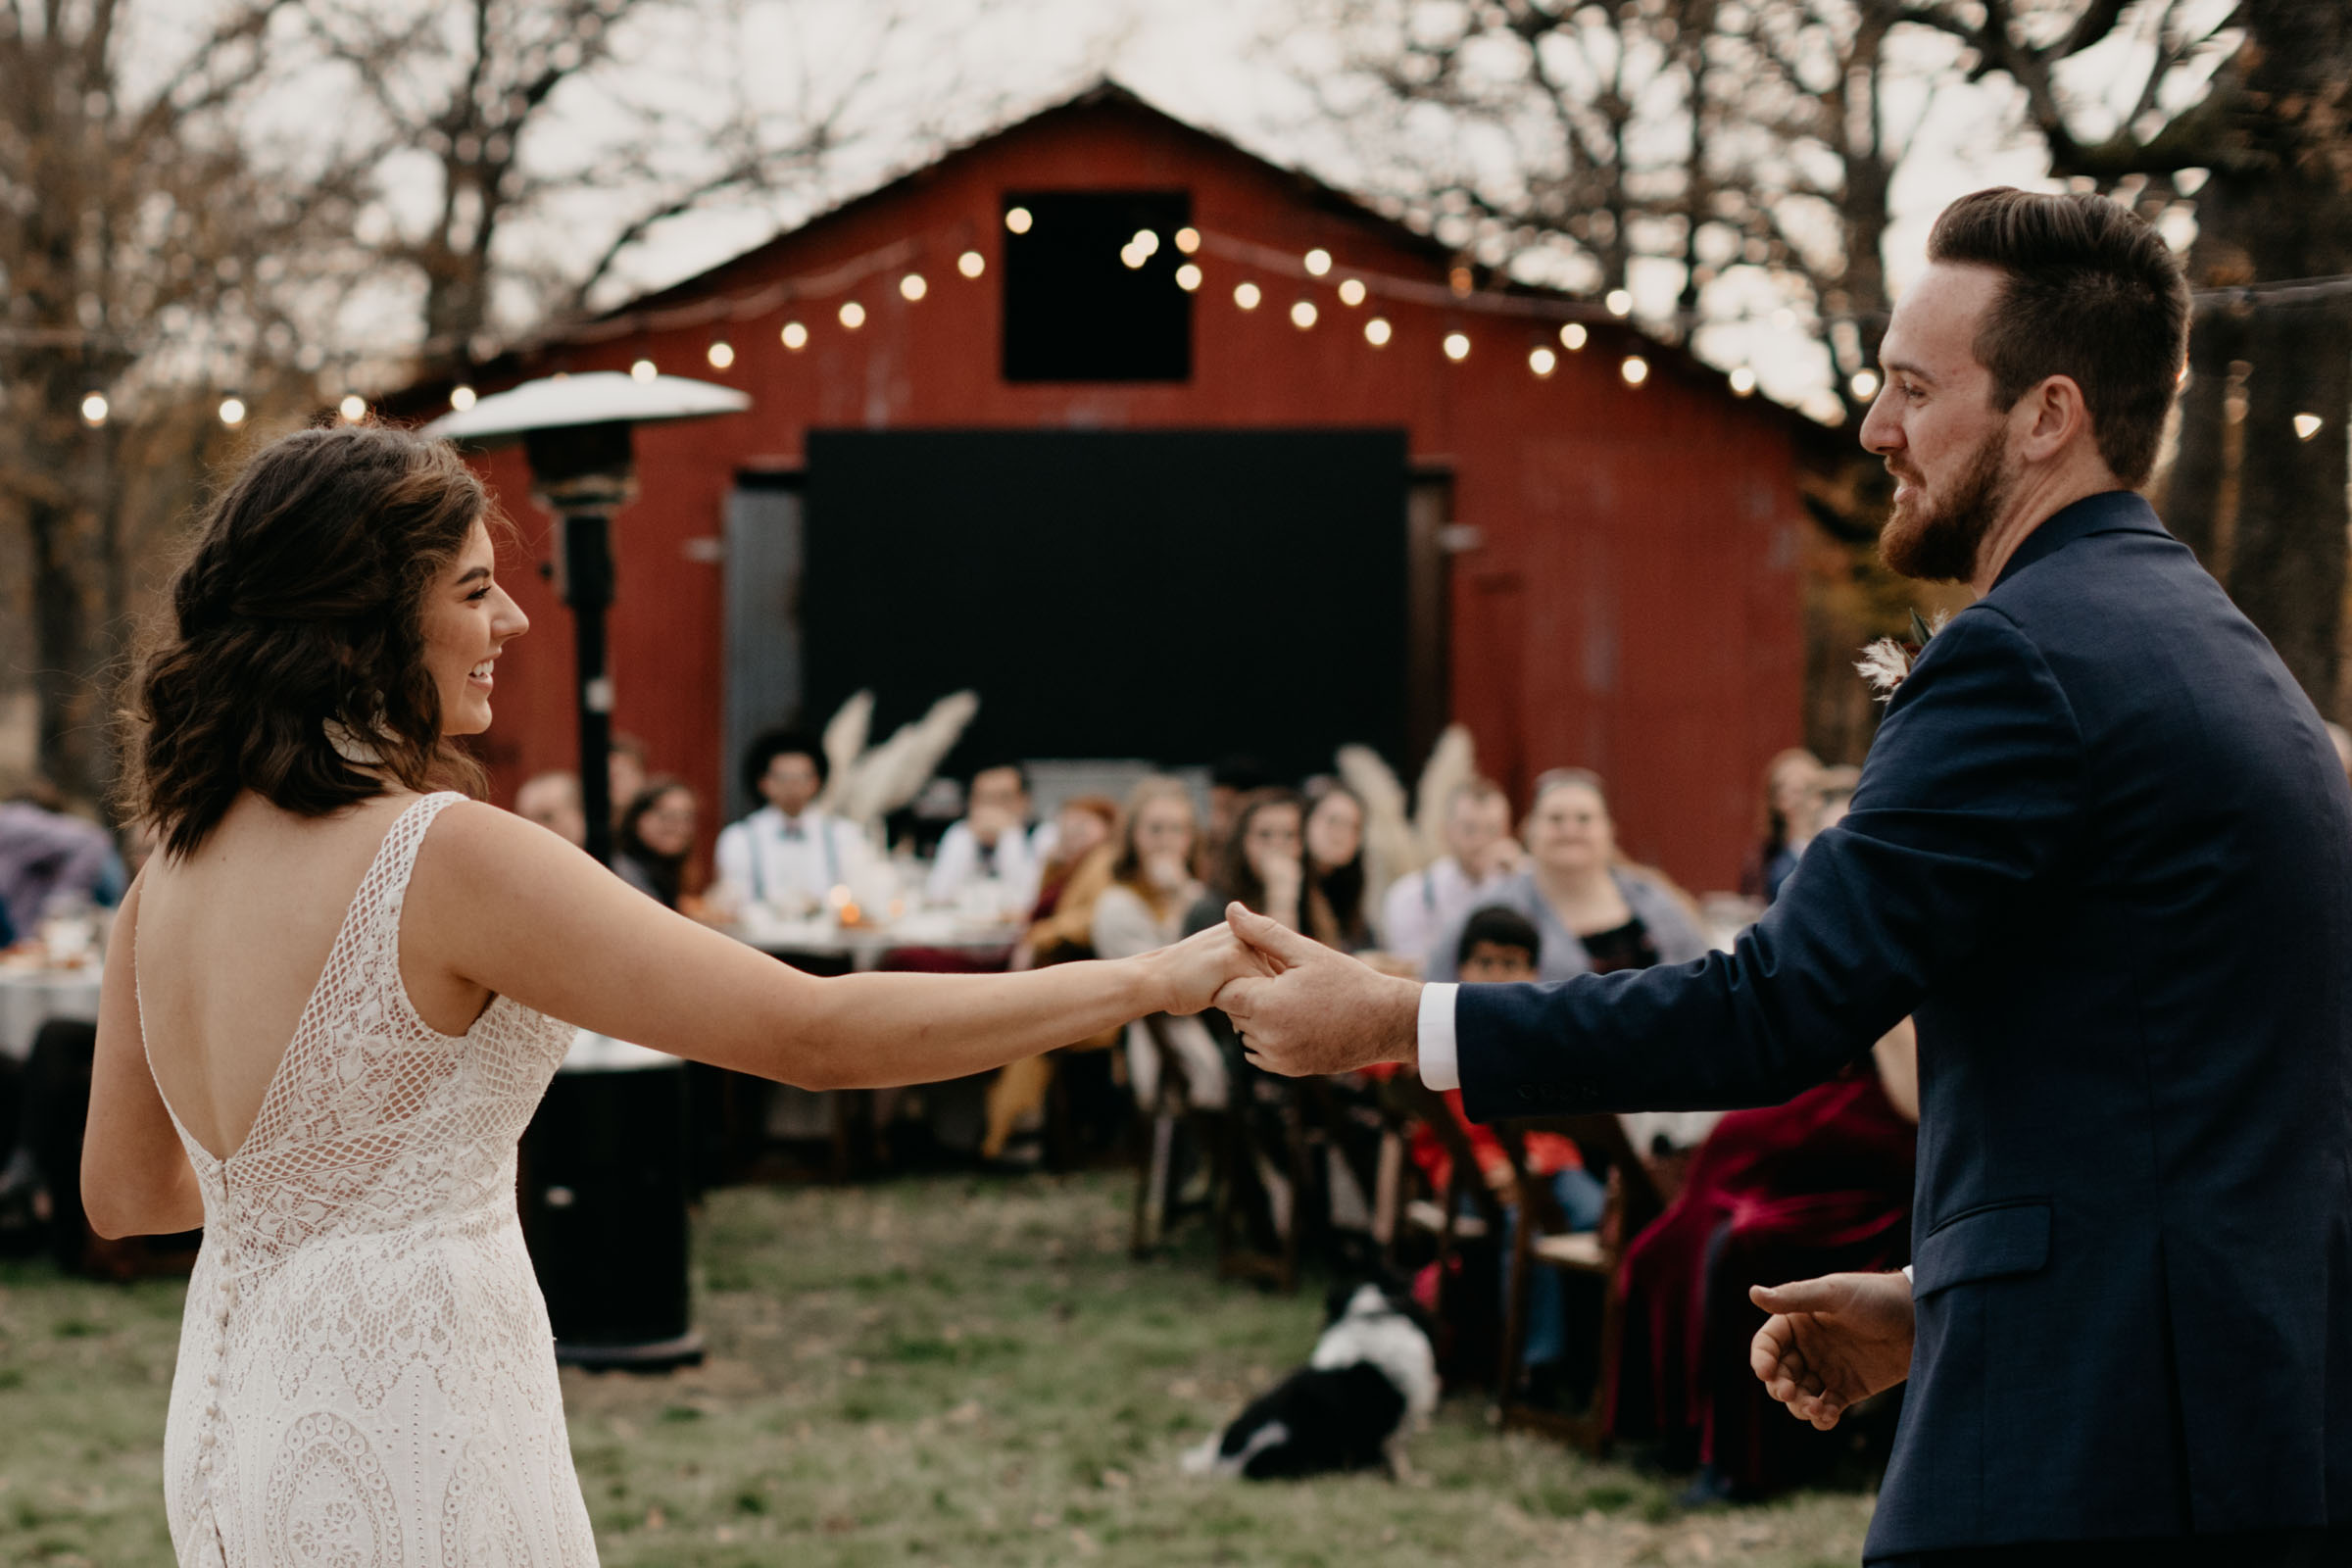 Bride and groom dancing in front of red barn at their backyard wedding